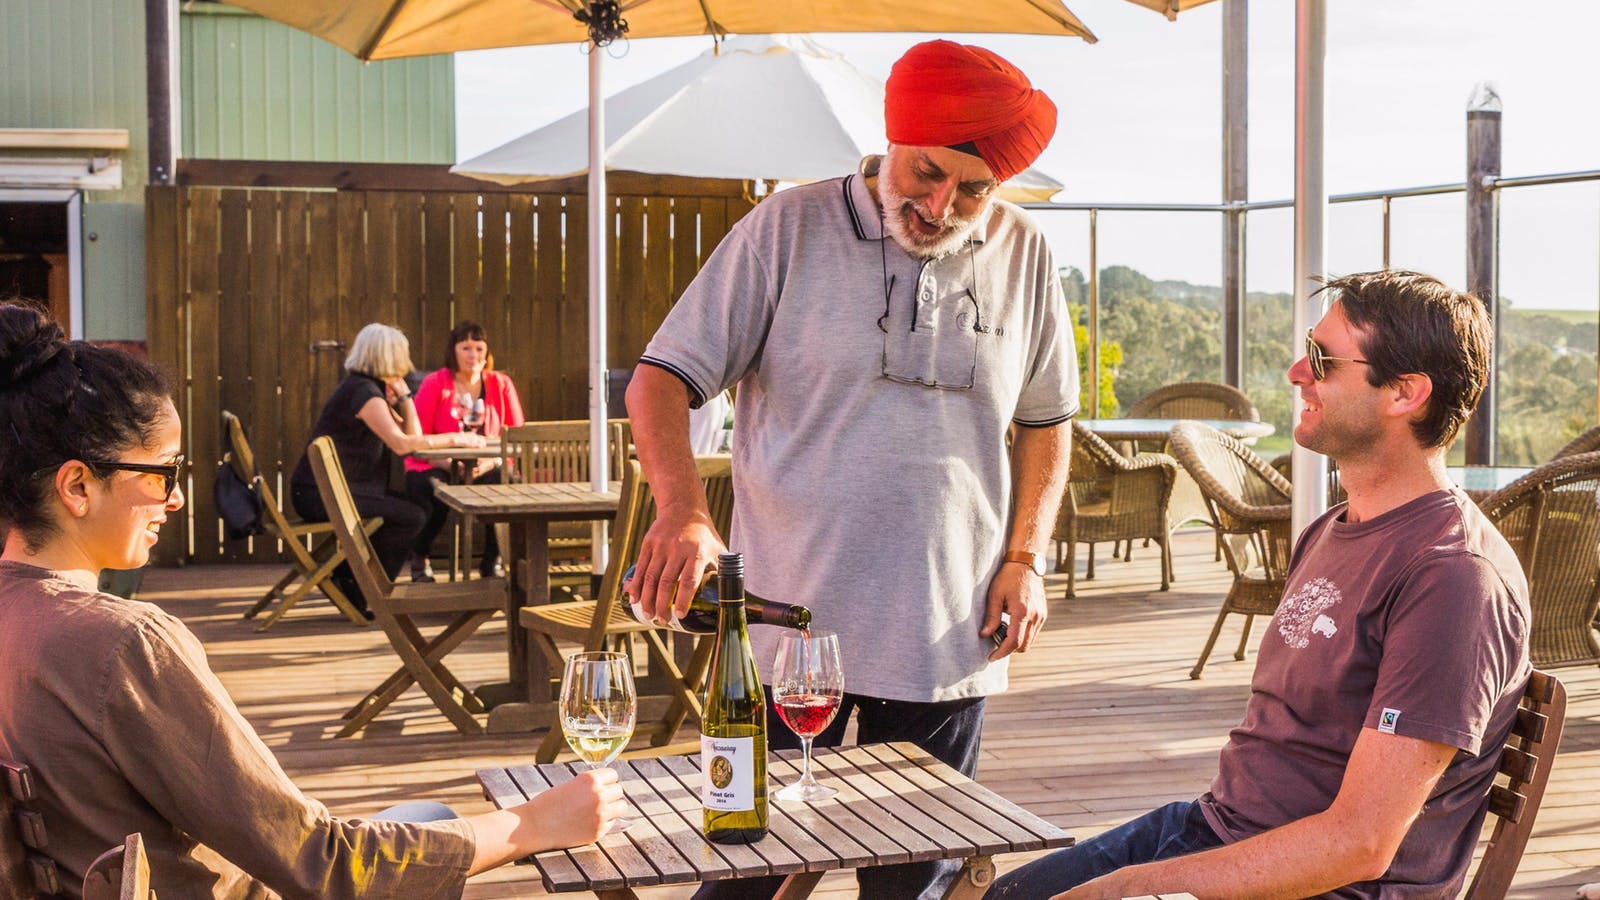 Delightful outdoor deck with stunning views at Nazaaray Estate Winery